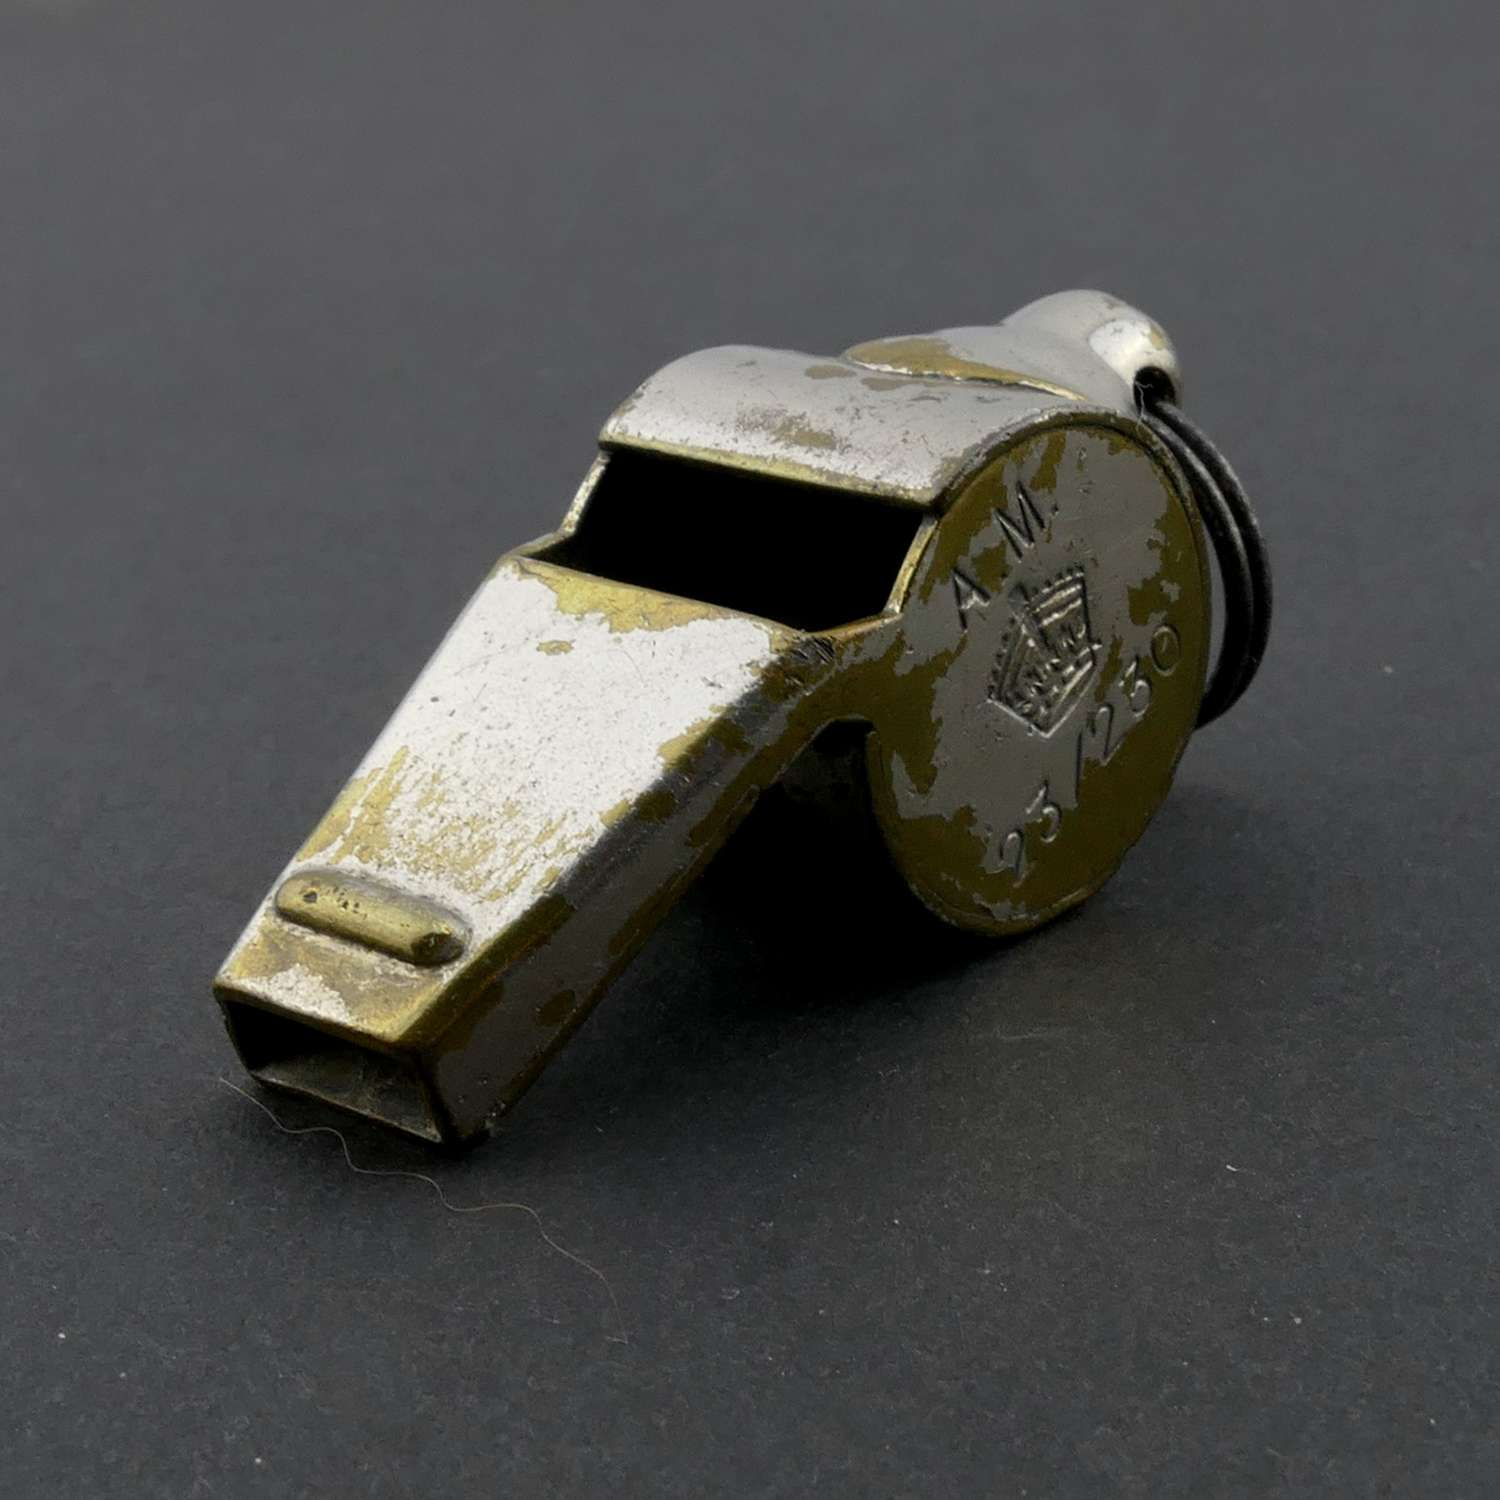 RAF / Air Ministry Mae West 'ditching' whistle